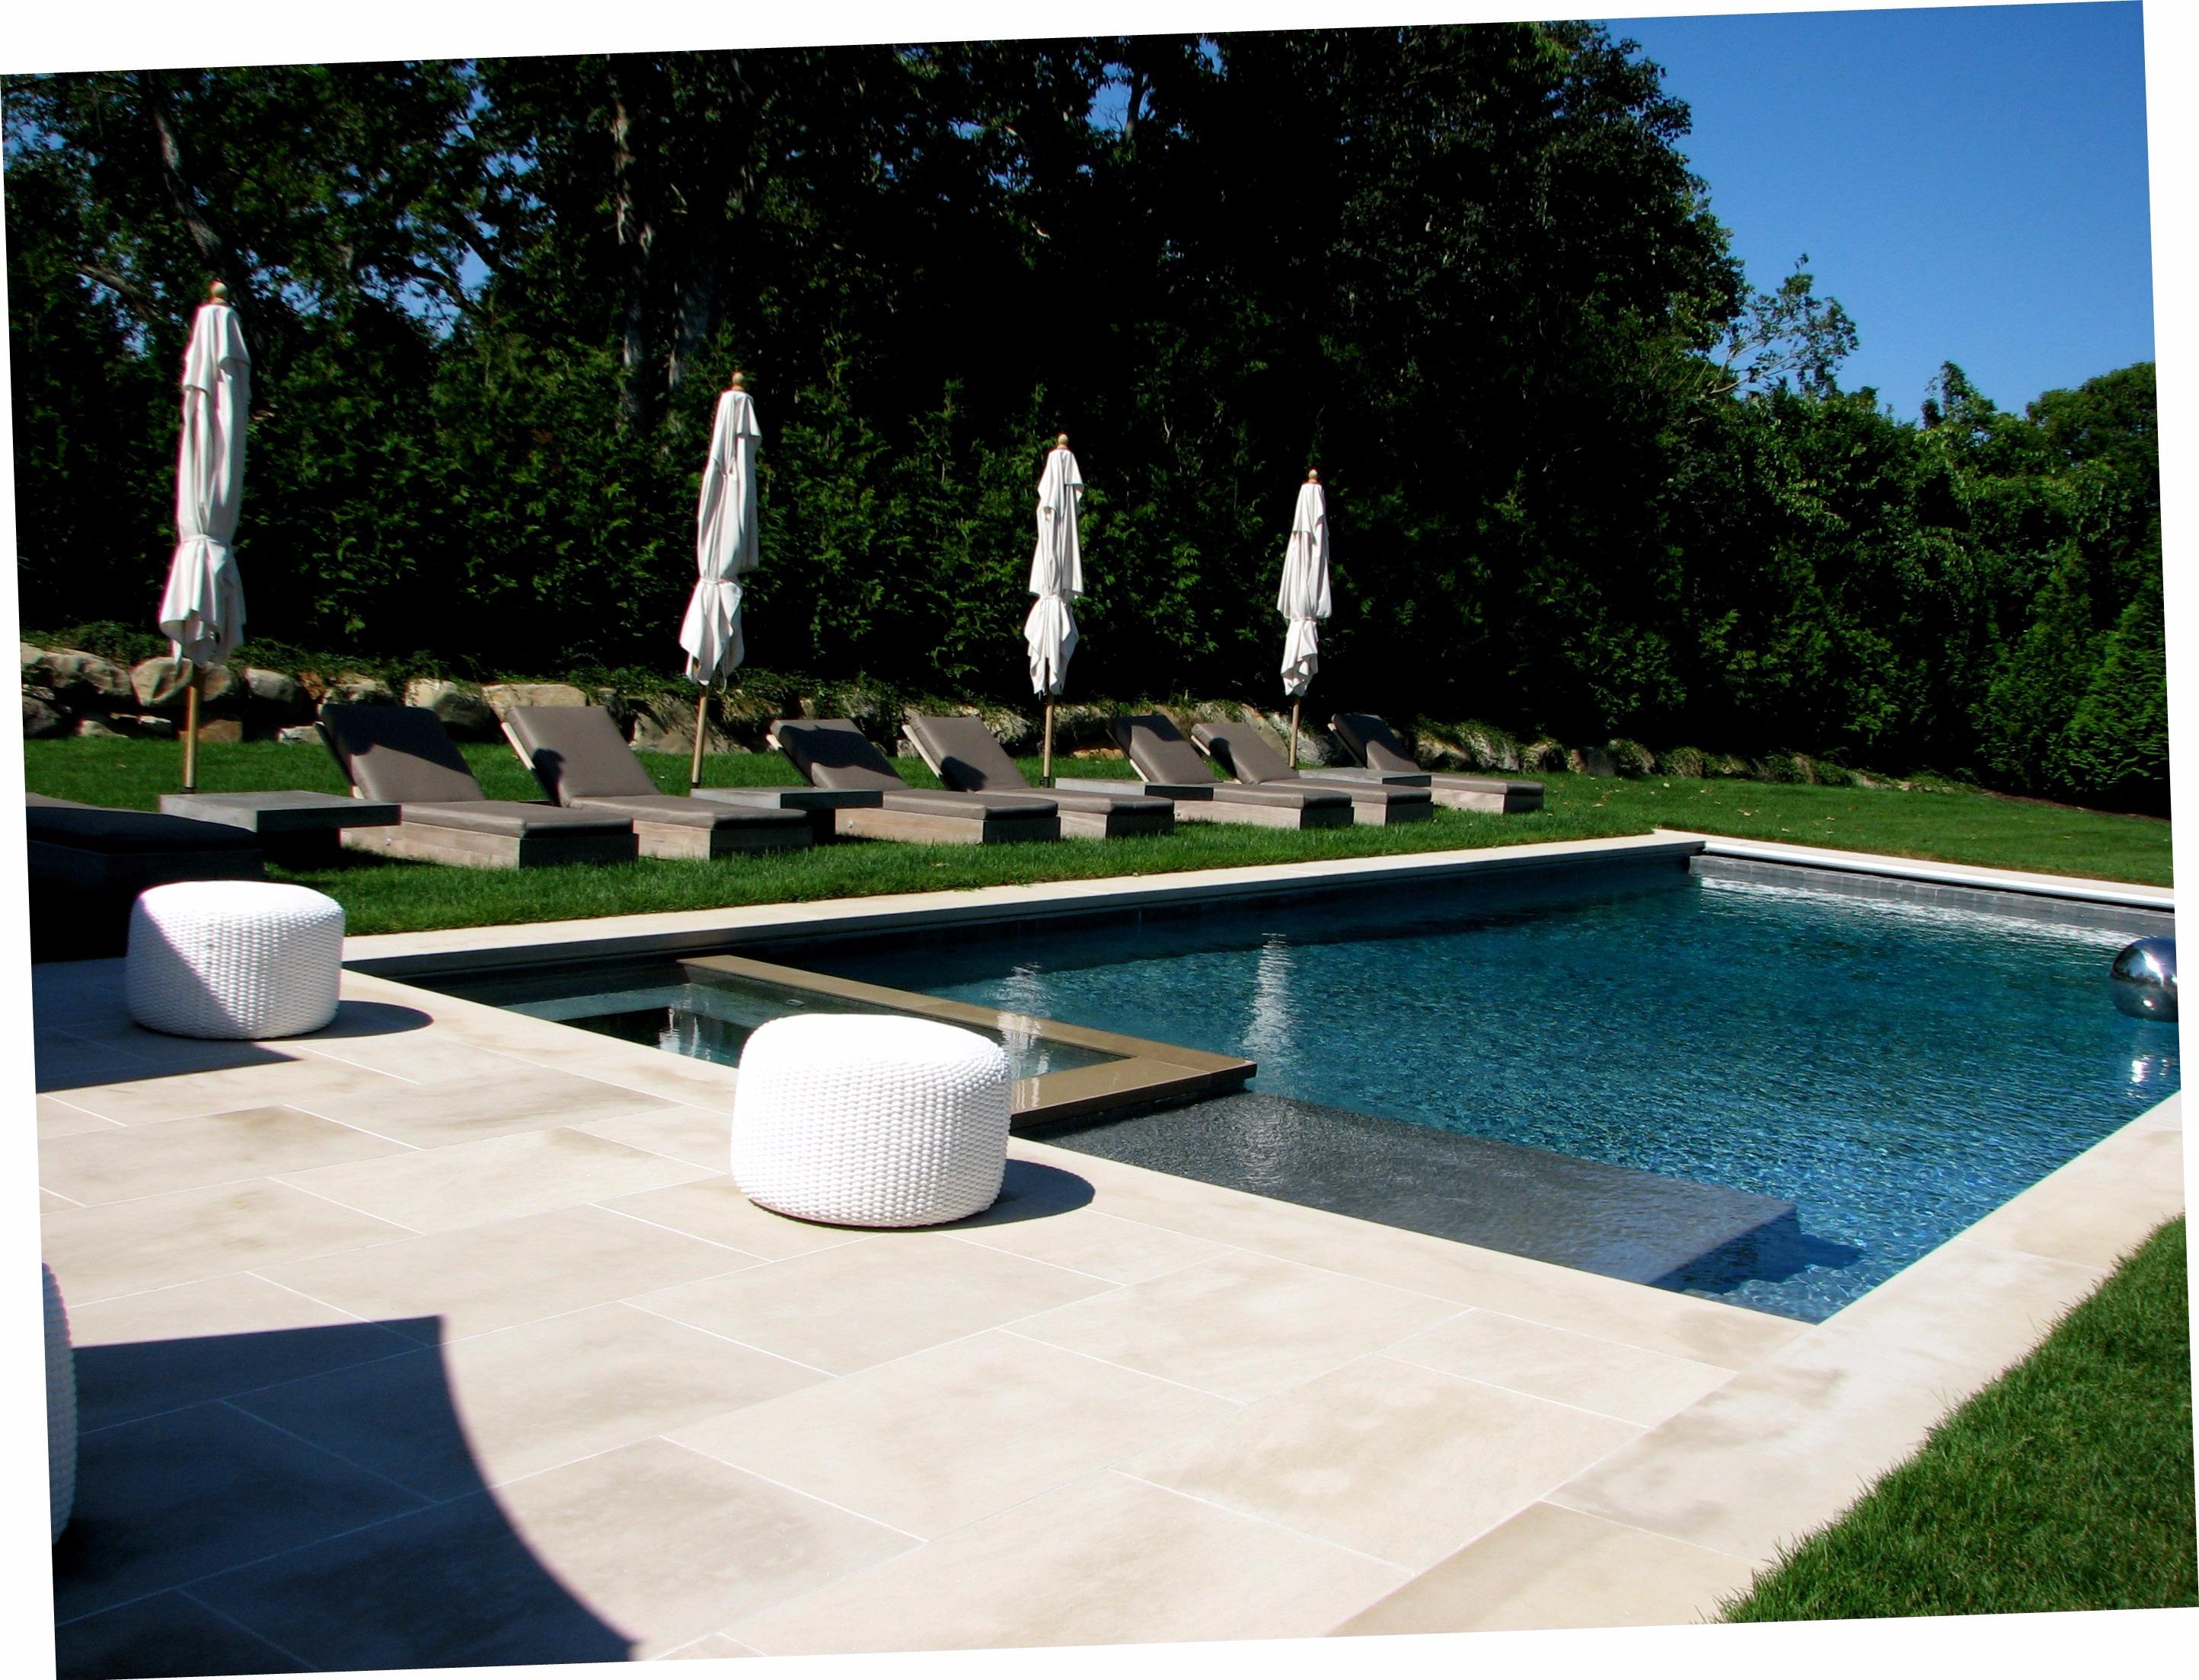 Castro stoneworks masonry contractor stone brick Stony brook swimming pool hours